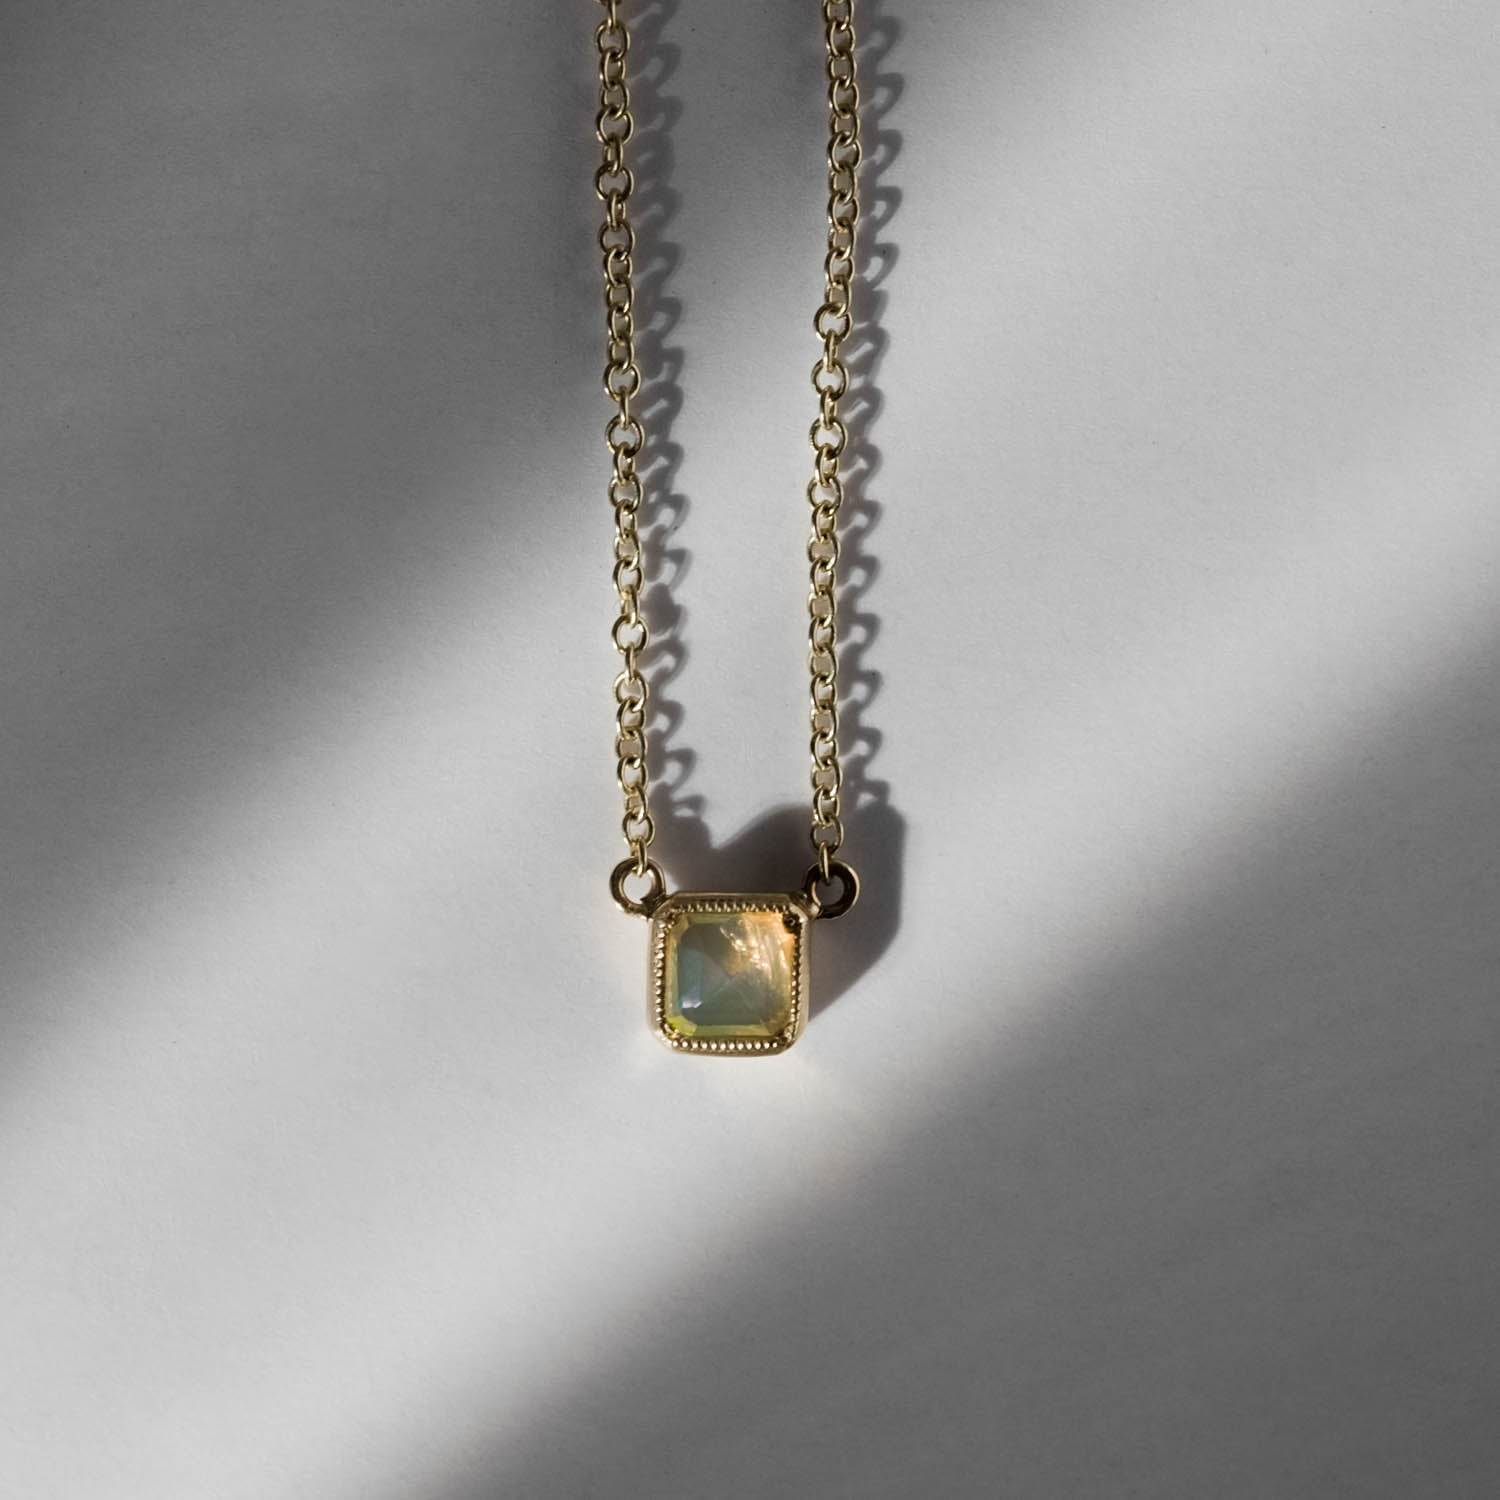 Maman Square Bezel Opal Necklace - RTS